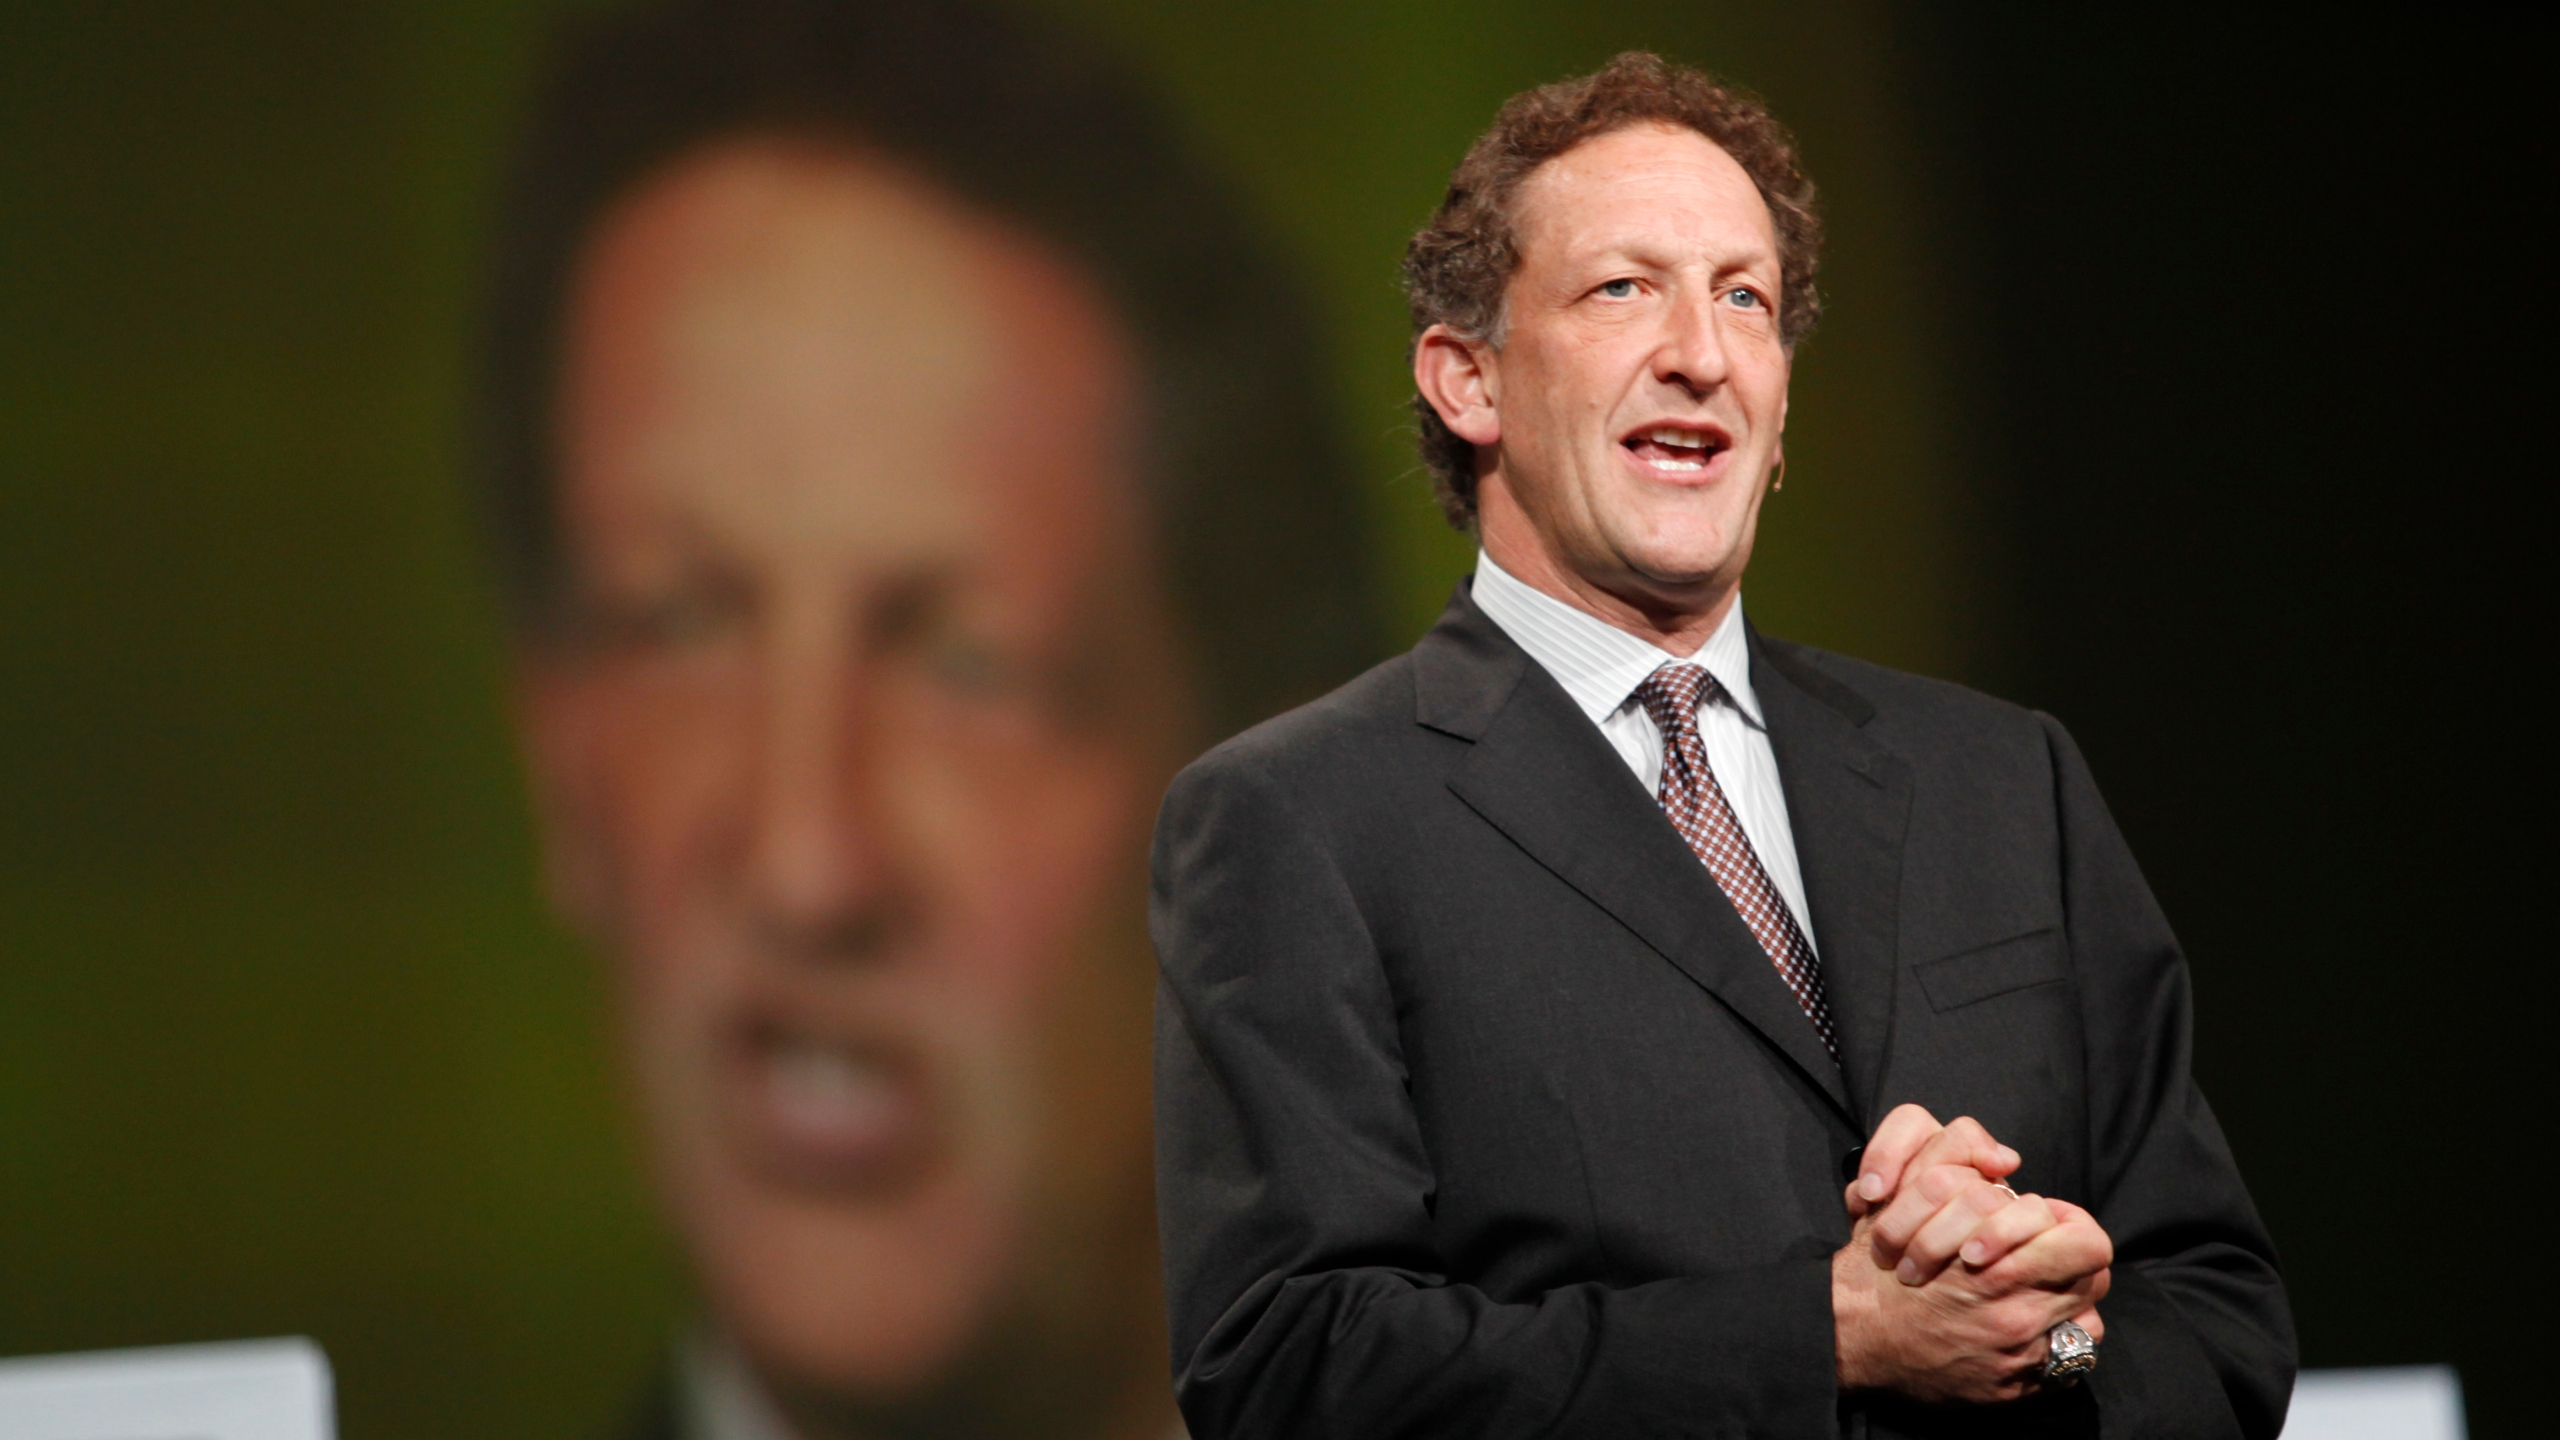 San Francisco Giants President Larry Baer appears to the stage to award Oracle CEO Larry Ellison the 2010 World Series ring at the Moscone Center in San Francisco during the Oracle OpenWorld 2011 on October 2, 2011. (Credit: KIMIHIRO HOSHINO/AFP/Getty Images)